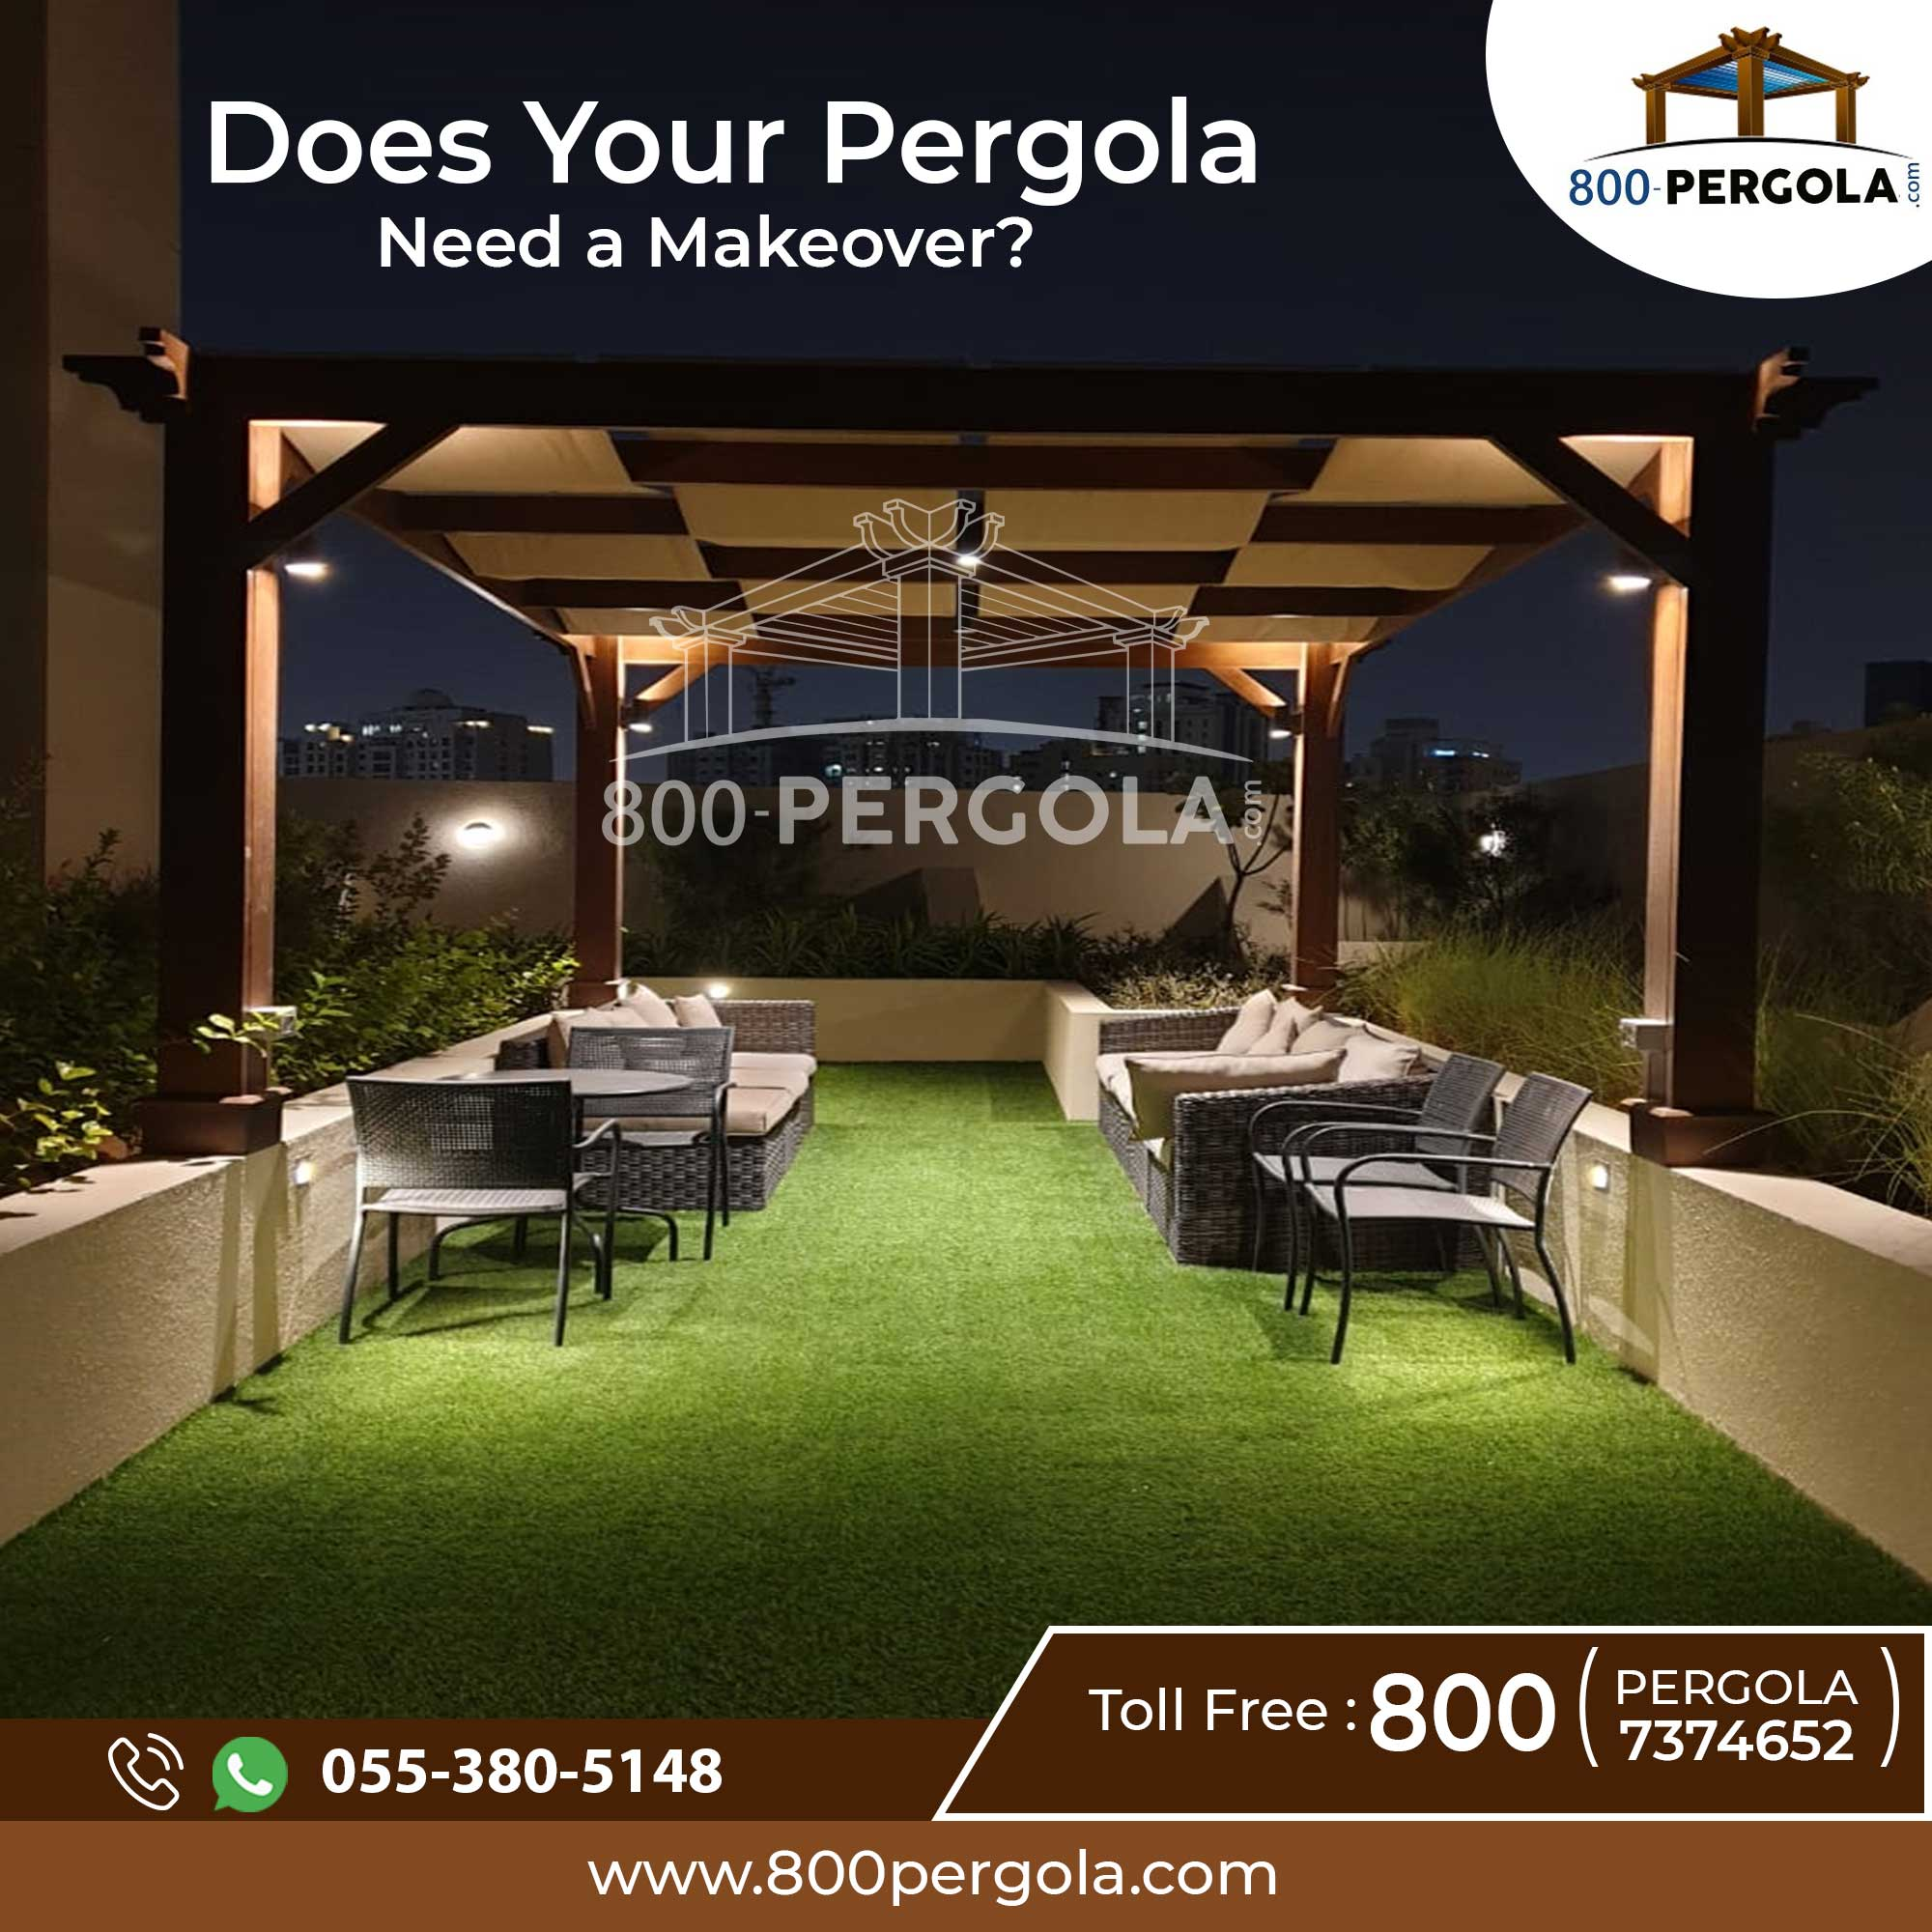 Does Your Pergola Need a Makeover?